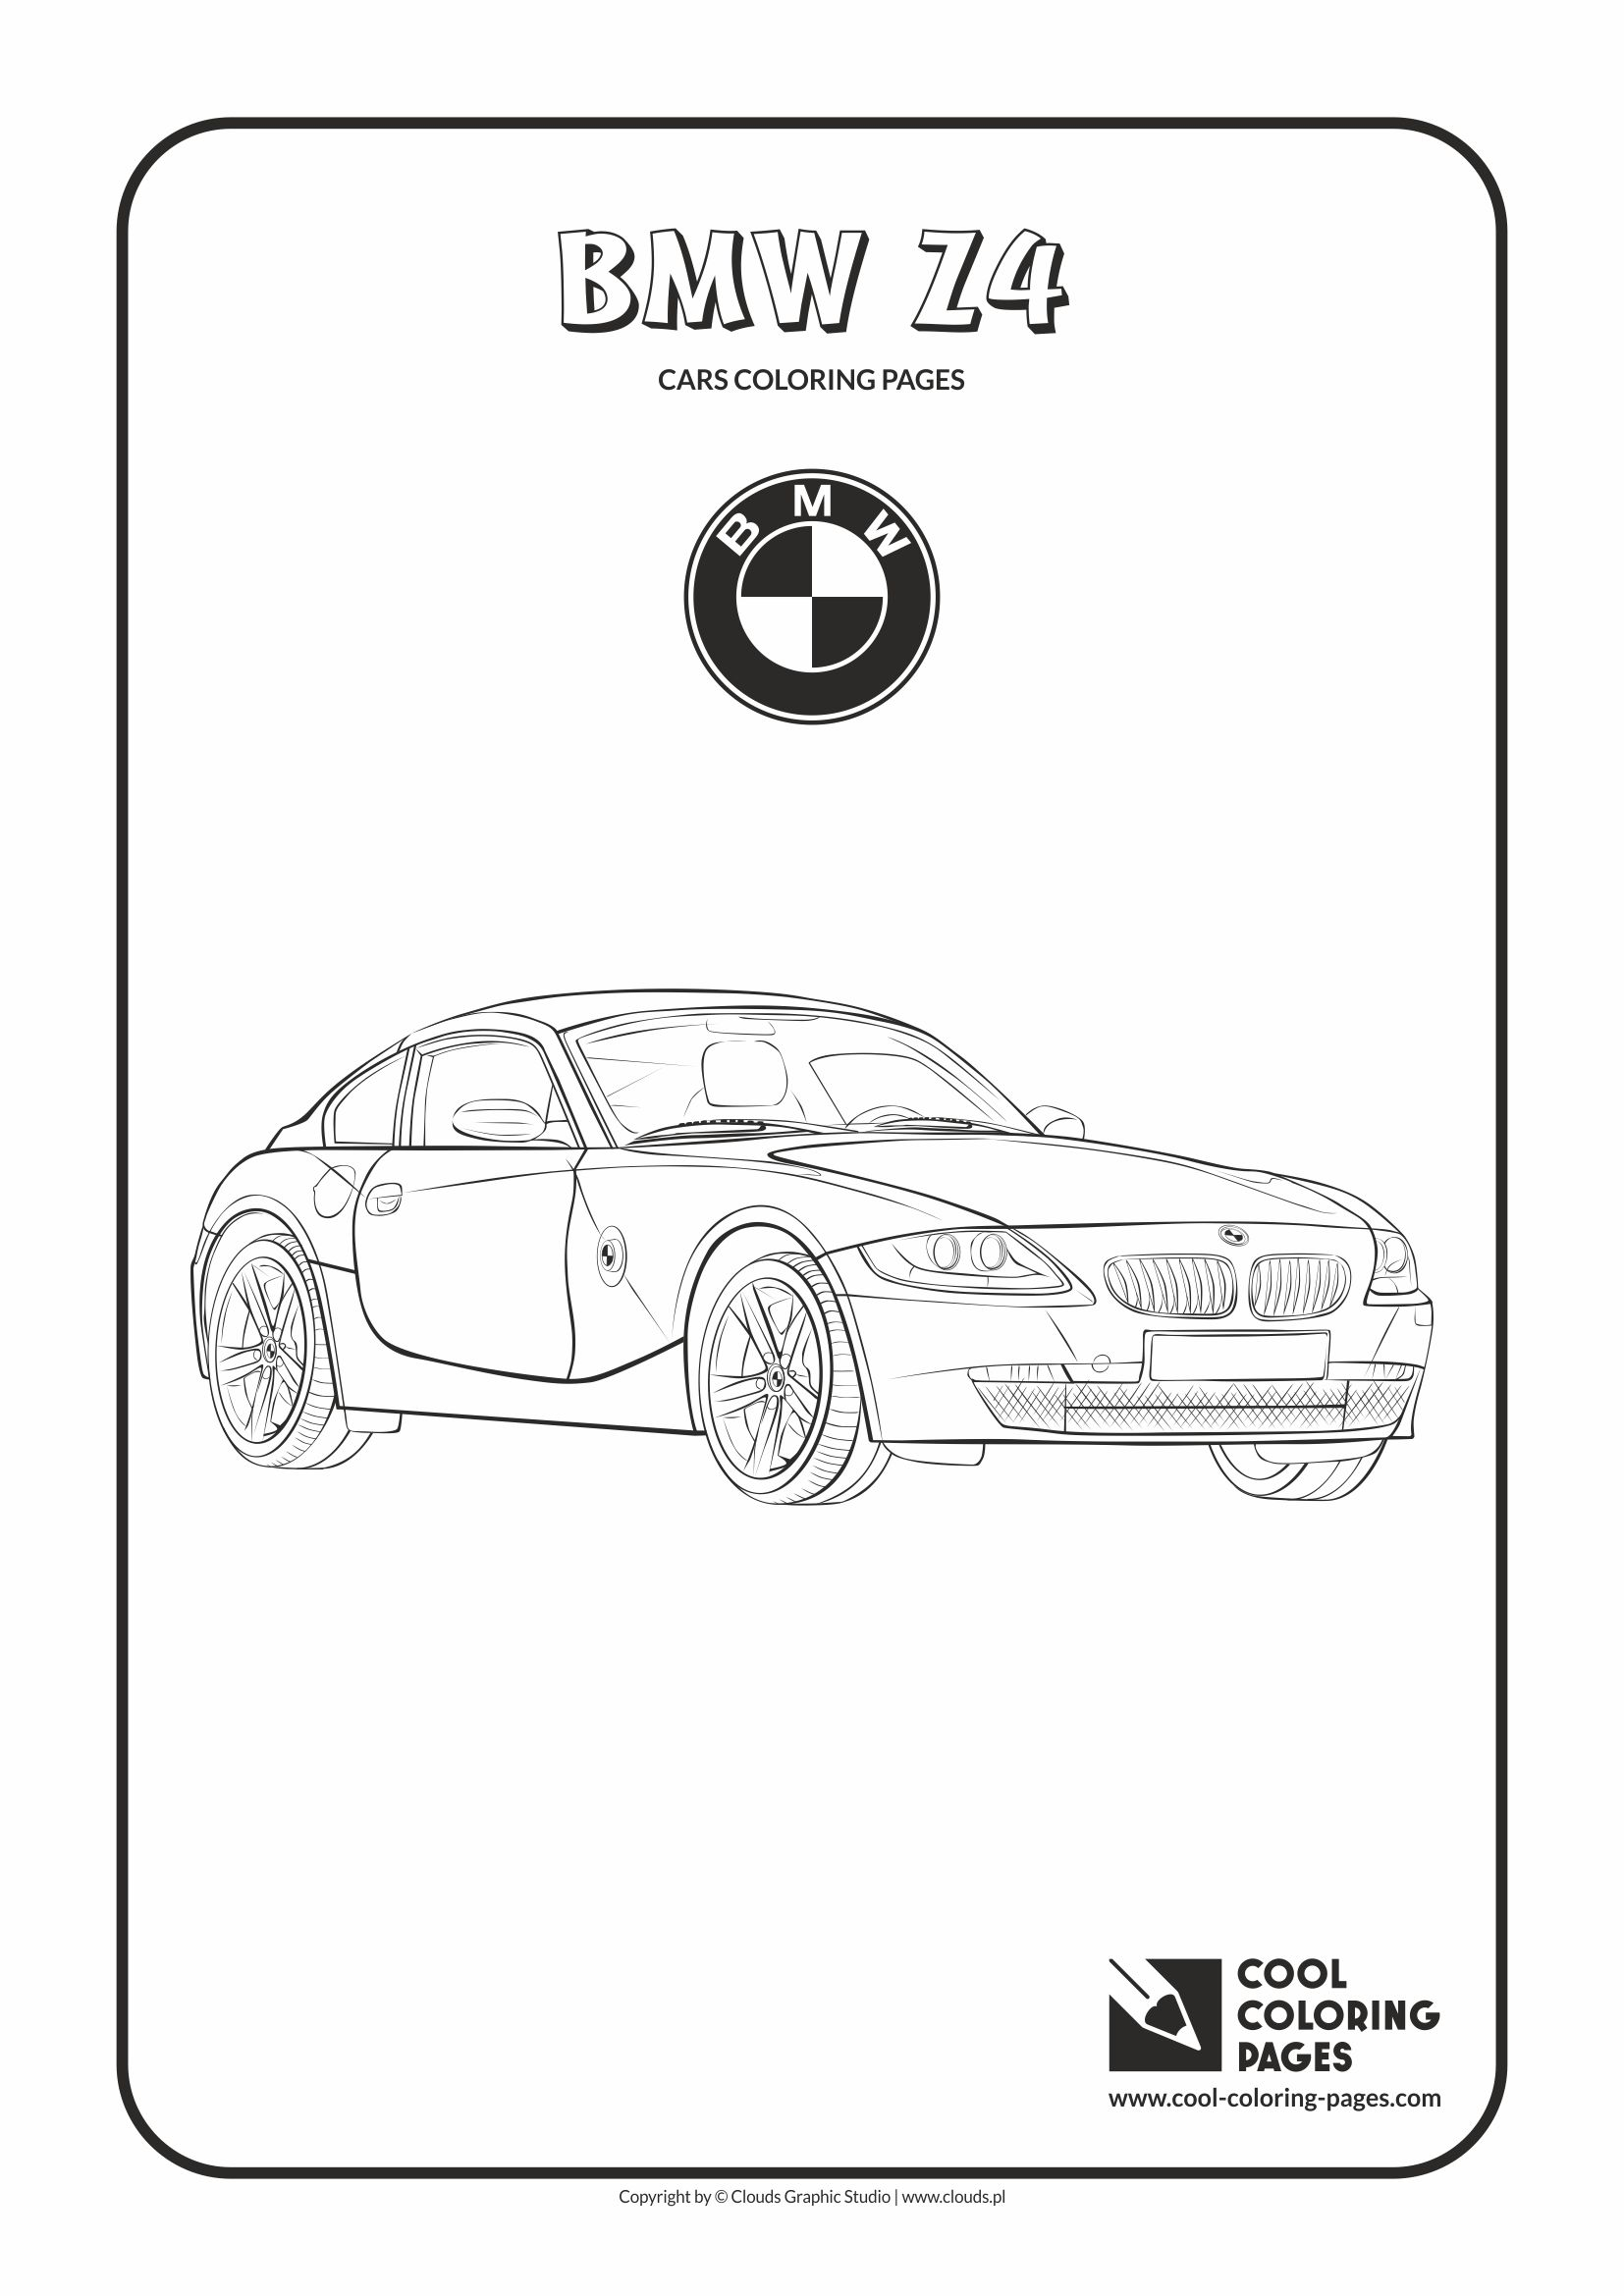 Cool Coloring Pages - Vehicles / BMW Z4 / Coloring page with BMW Z4